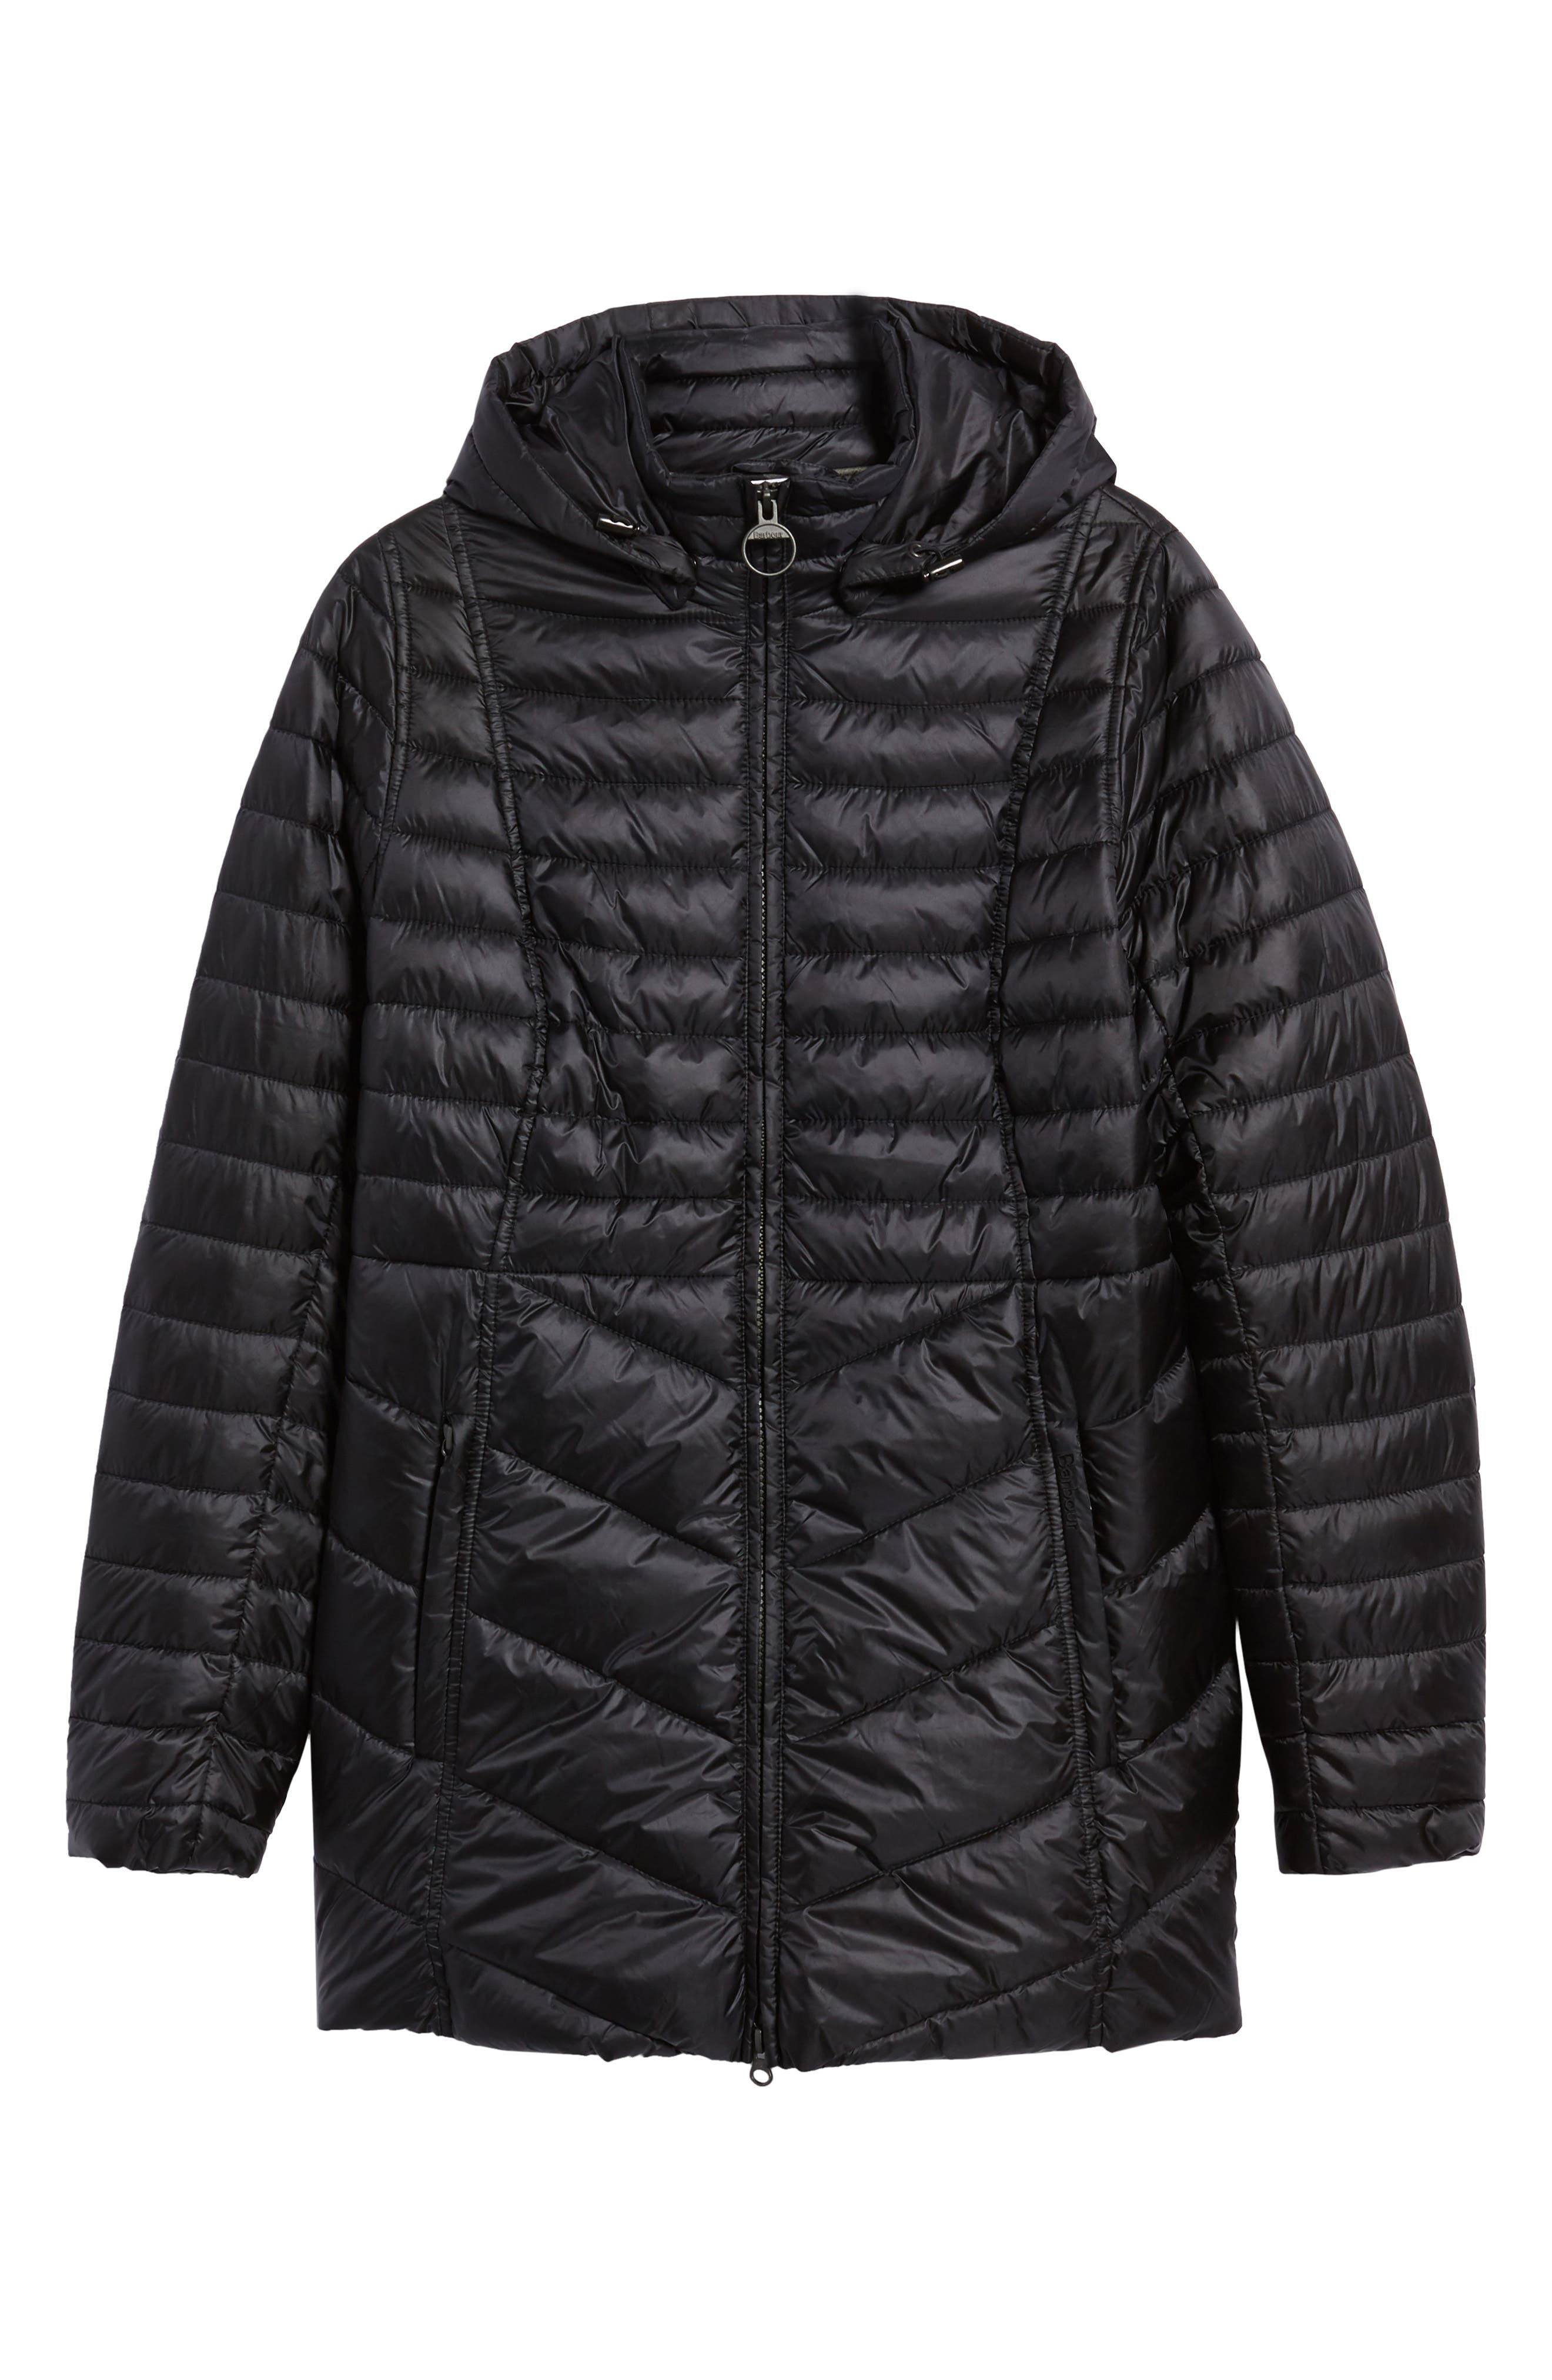 Linton Hooded Water Resistant Quilted Jacket,                             Alternate thumbnail 5, color,                             001